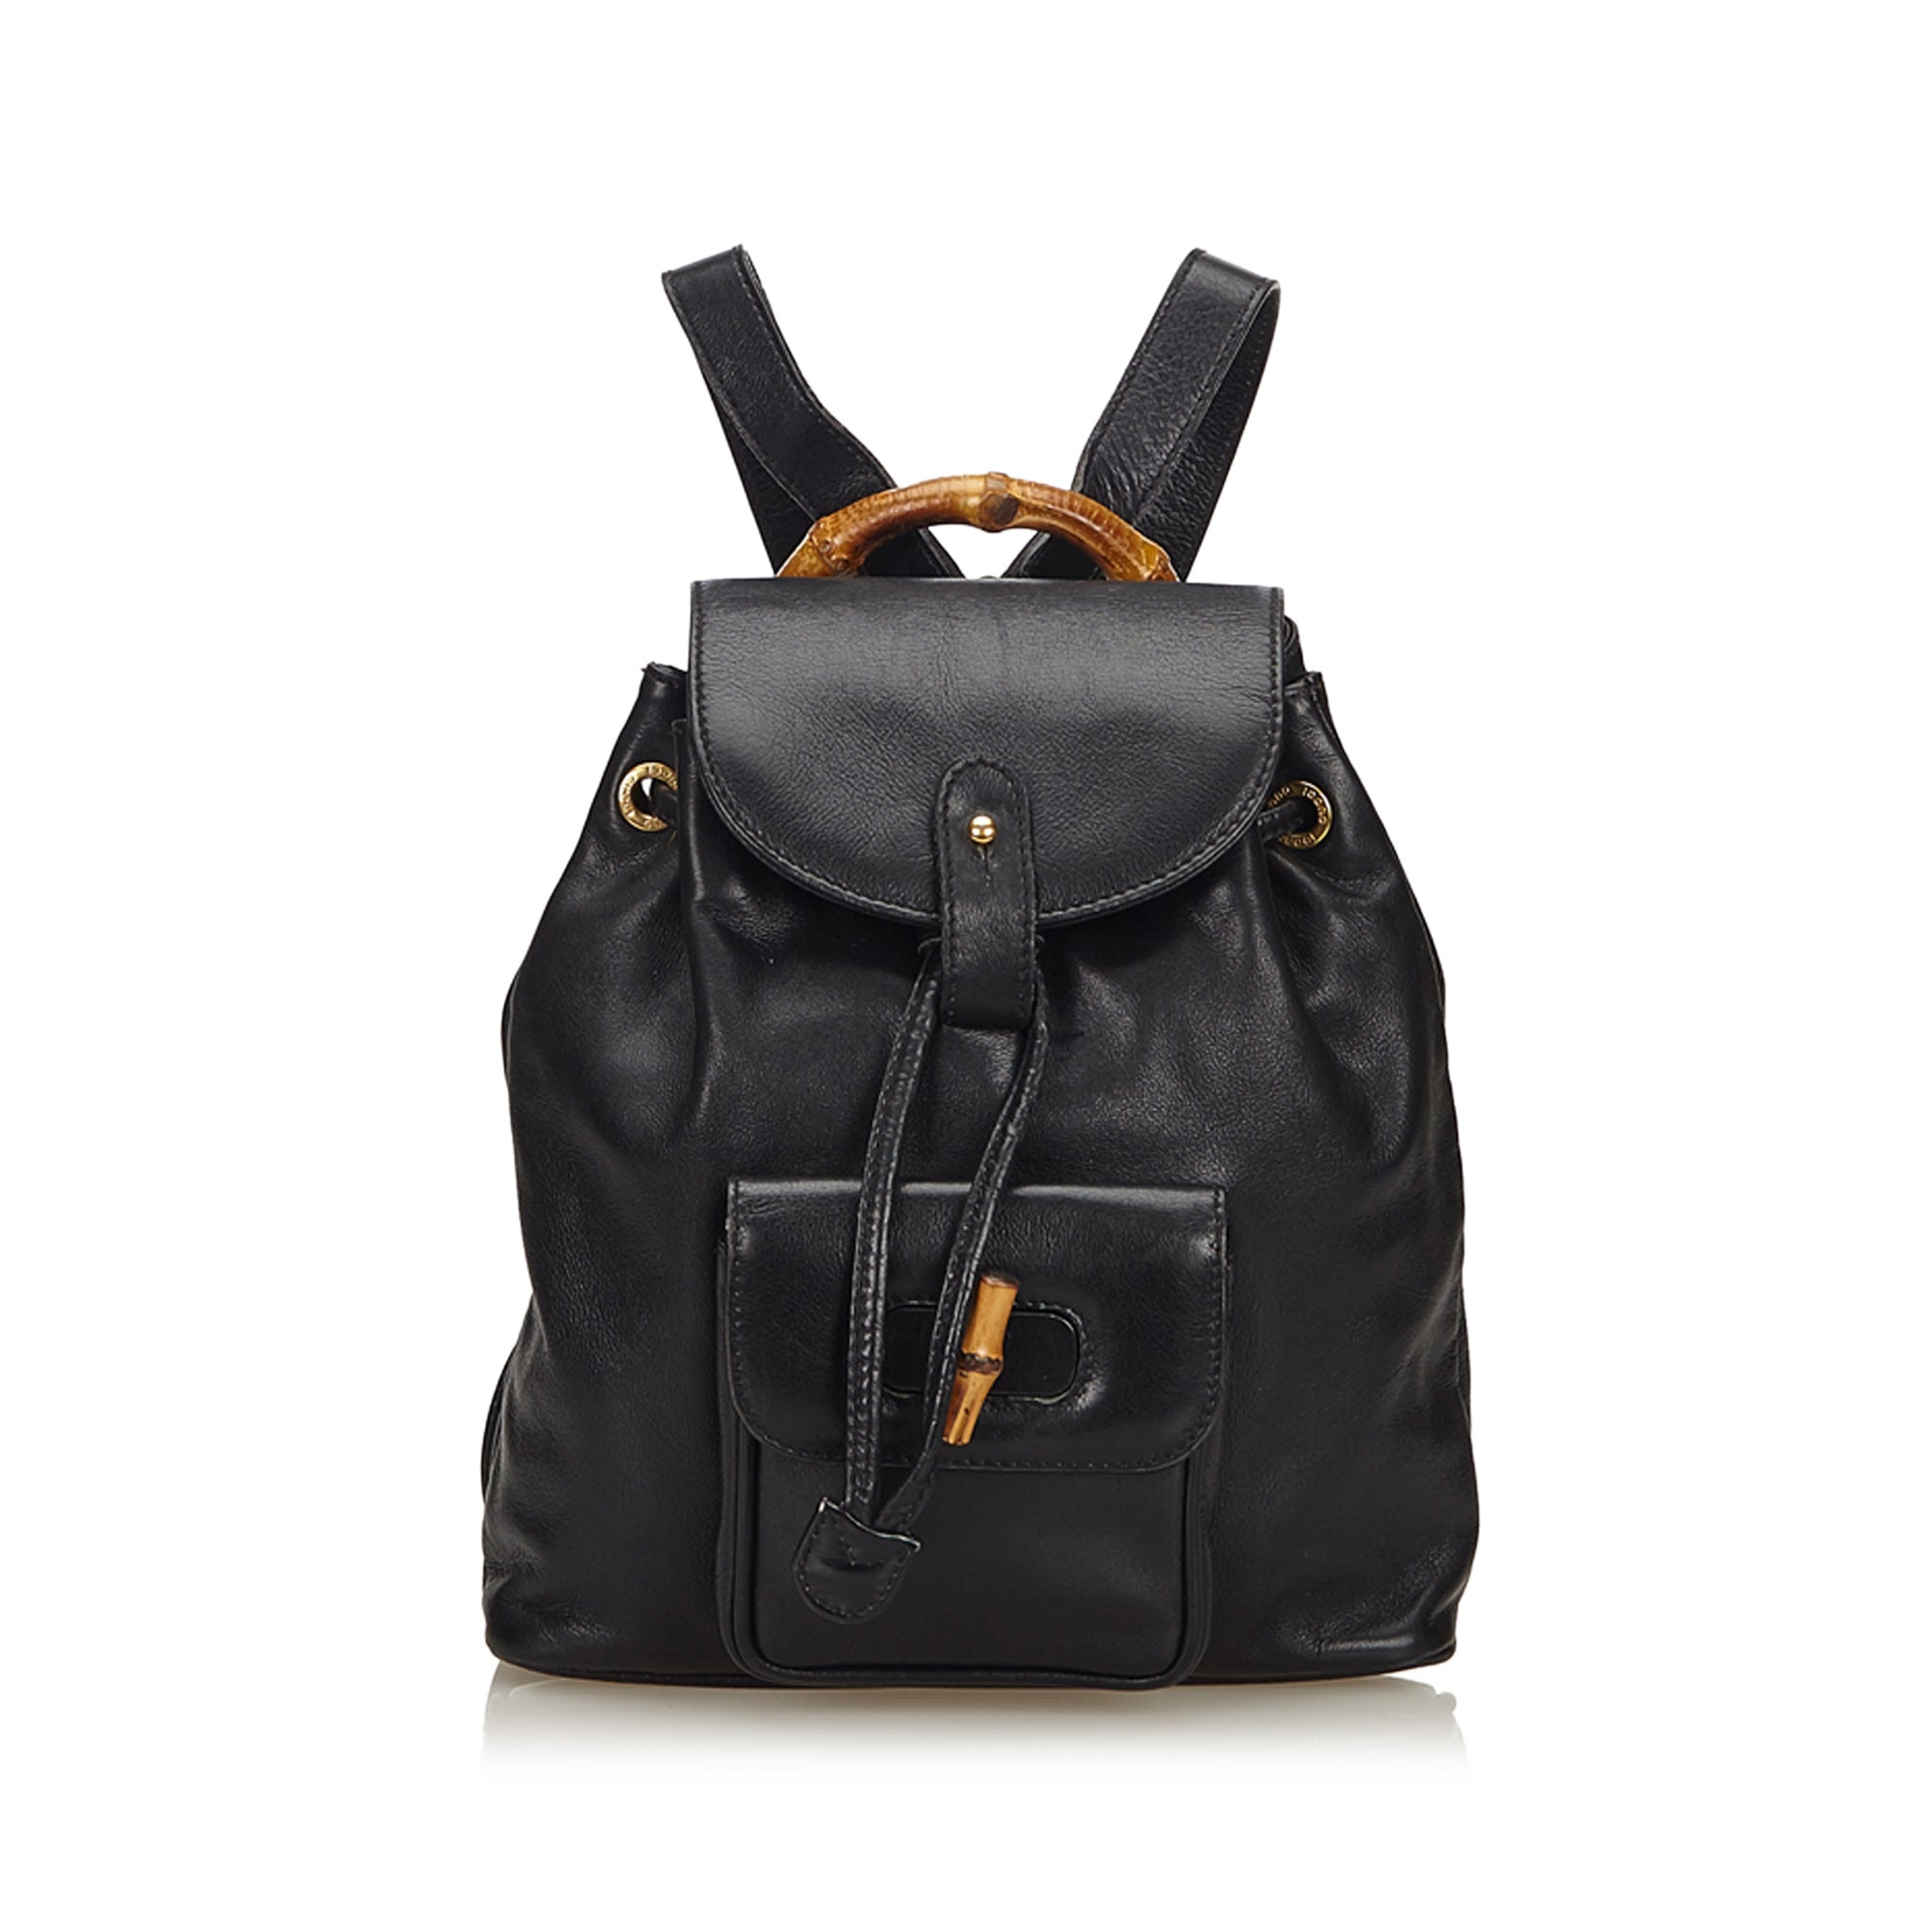 Gucci Bamboo Leather Drawstring Backpack - Olive Street